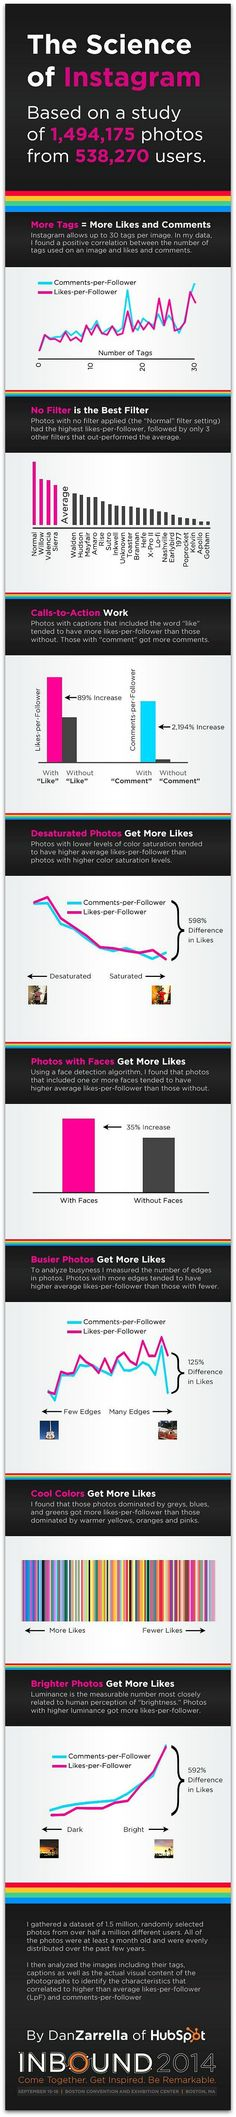 Infographic: Scientifically proven ways to get more Instagram engagement   Articles   Main